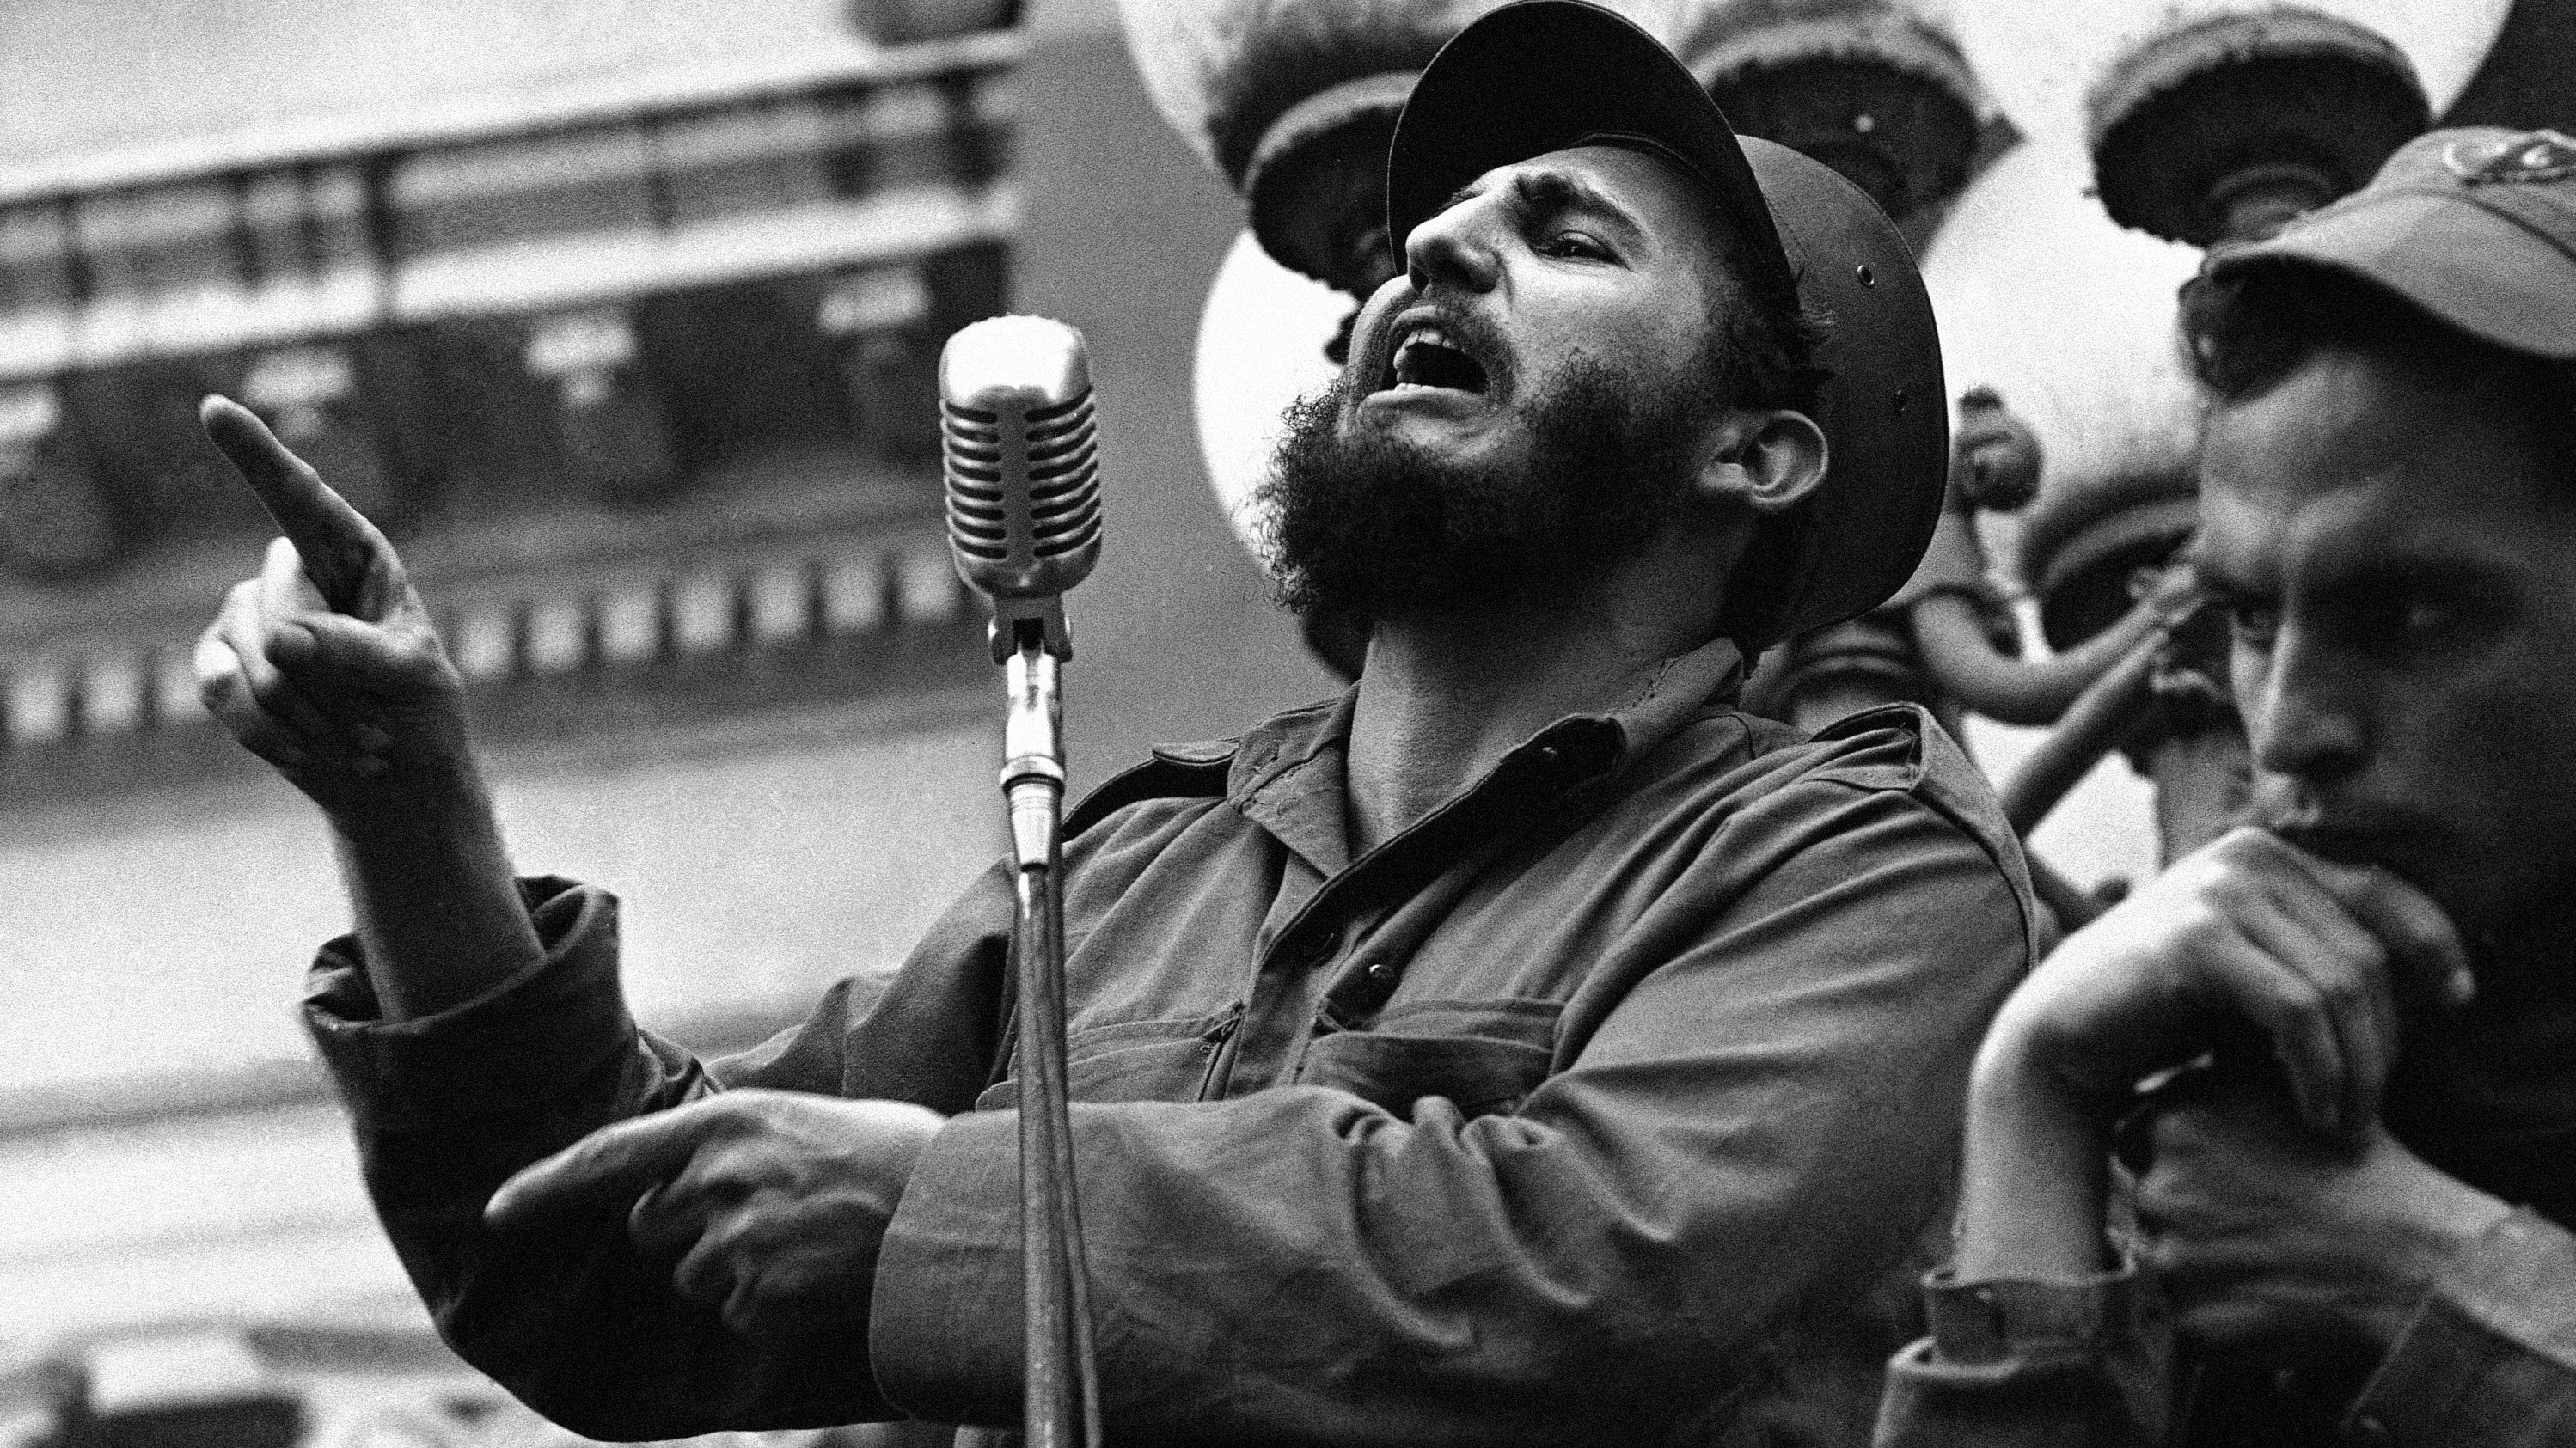 Rebel leader Fidel Castro draws a laugh from the crowd in the street as he makes a speech in Colon, Jan. 7, 1959. Castro is making appearances at many towns as he and his caravan make their way toward Havana. He is expected to arrive in the capital tomorrow for a big welcome.